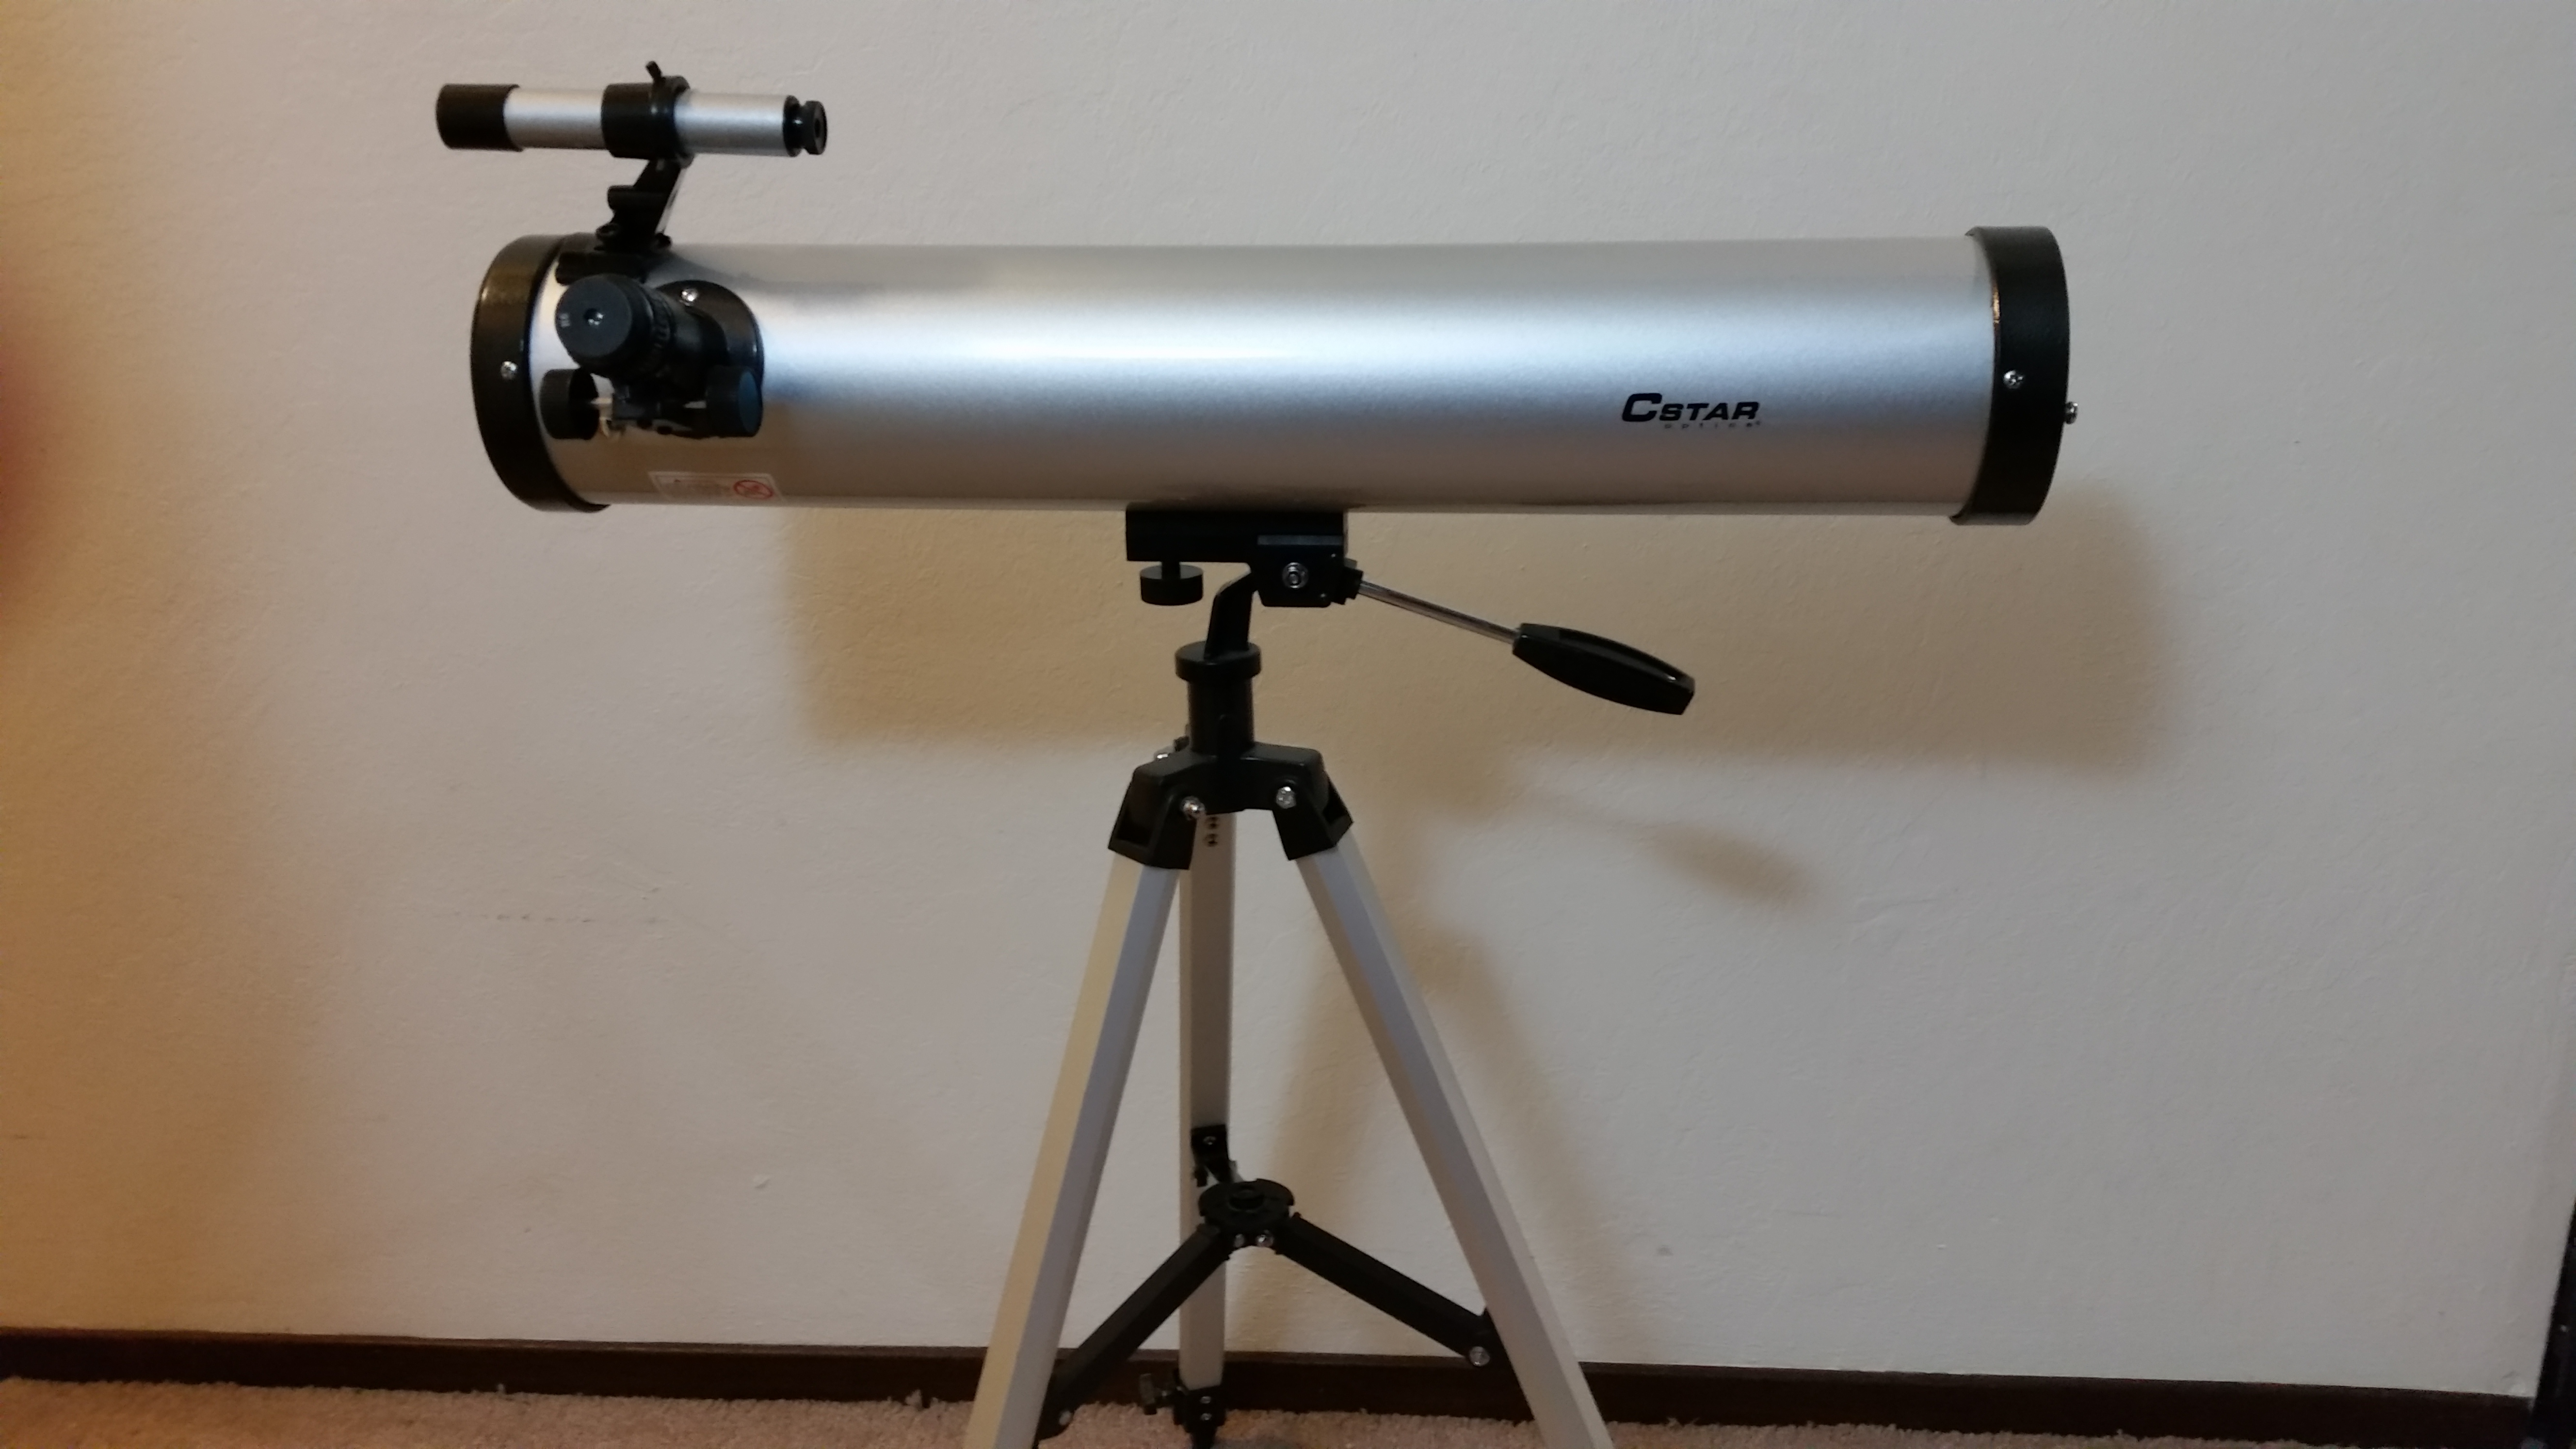 Like New  2014 C-Star 76700 Telescope, Like New Condition...